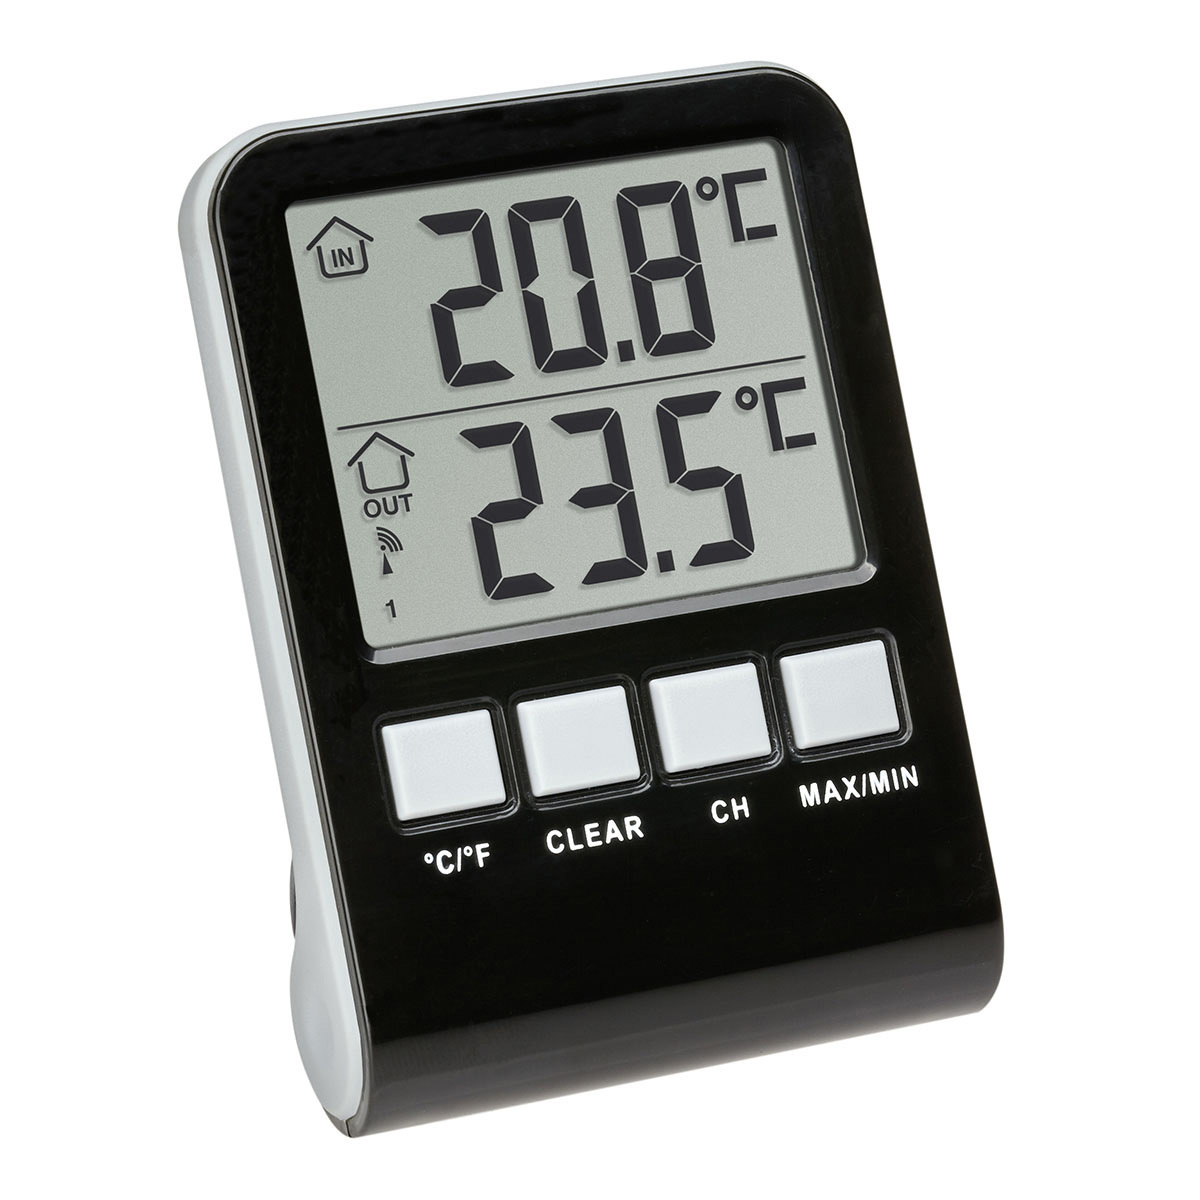 30-3067-10-funk-poolthermometer-palma-1200x1200px.jpg